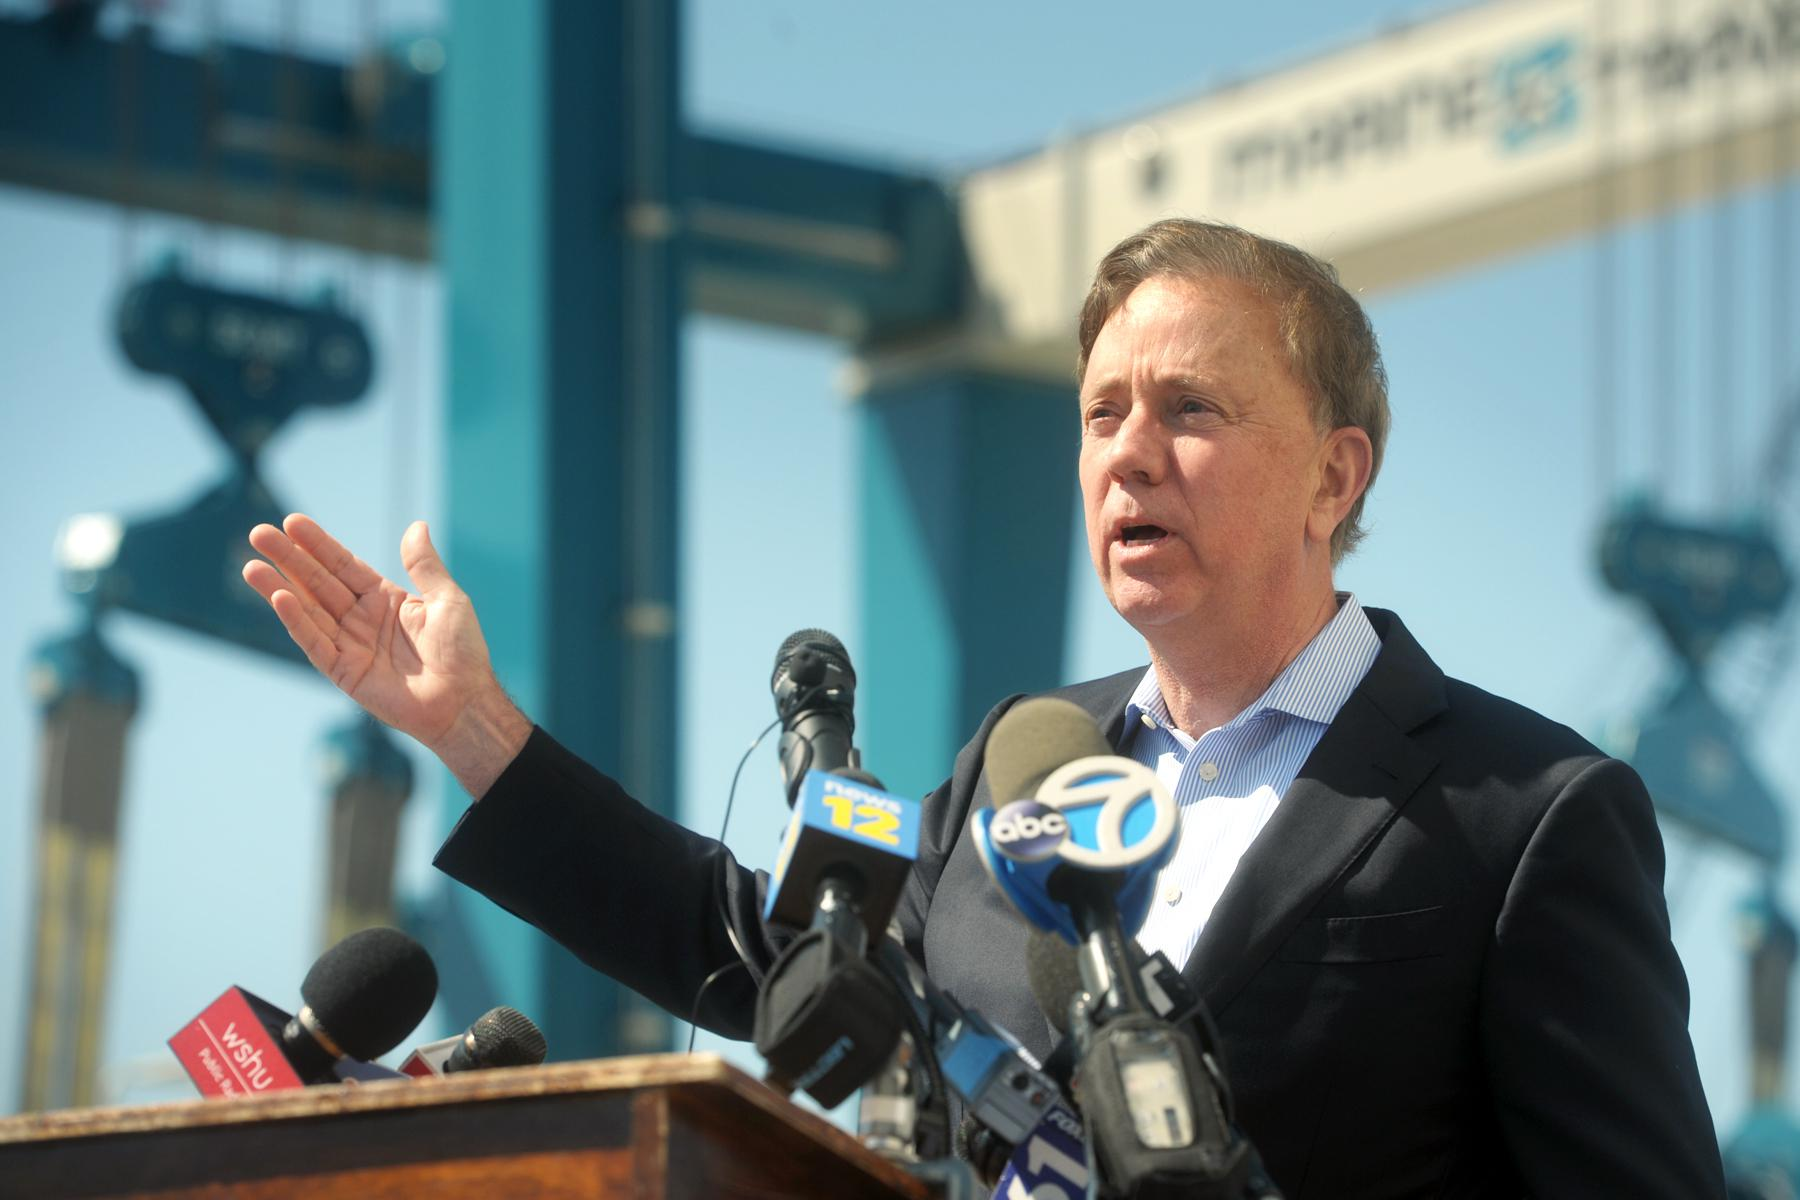 Democratic operative in place for Lamont's likely reelection bid